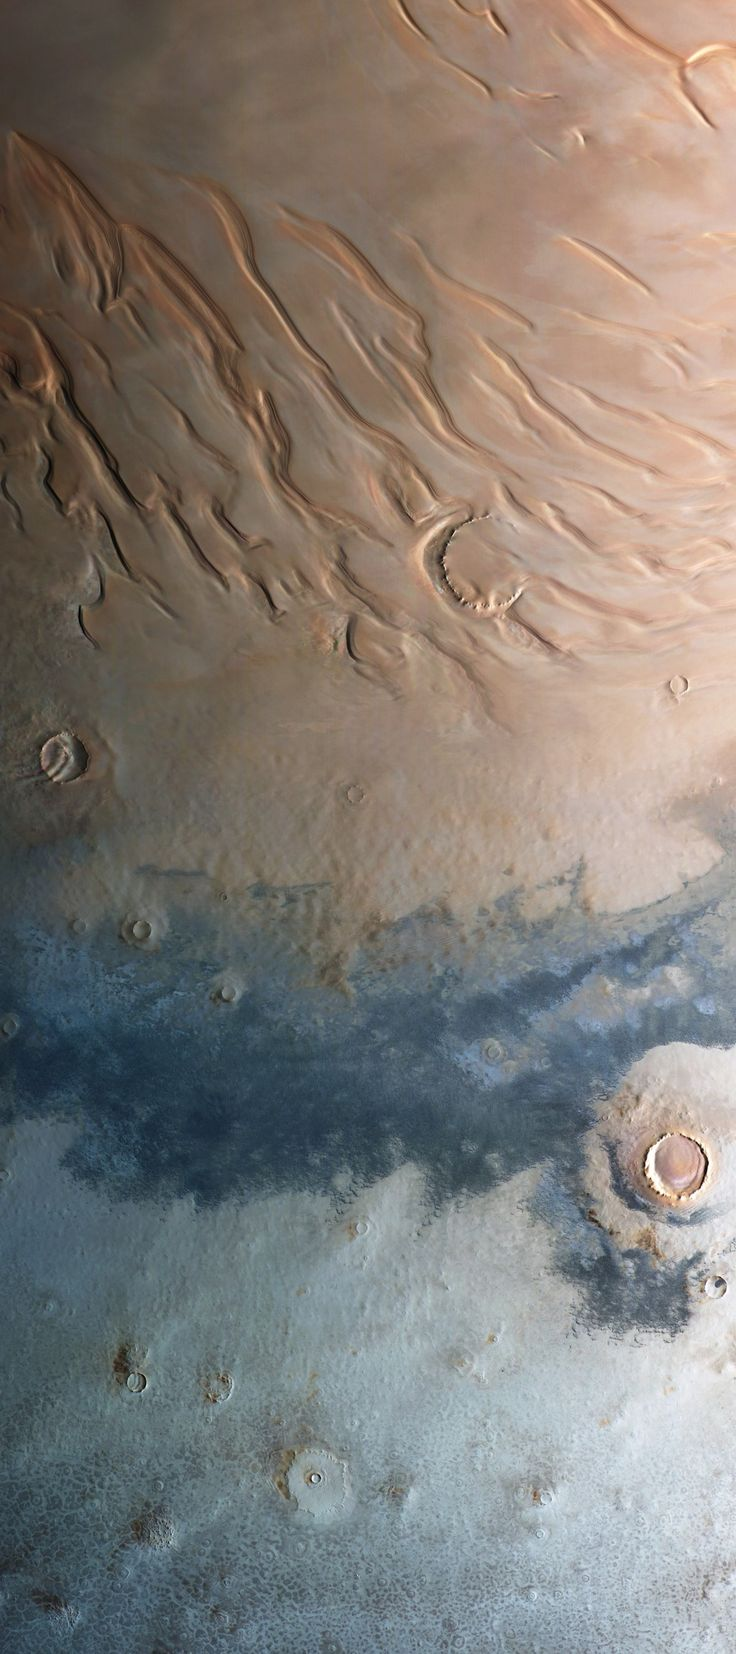 The Mars Express orbiter captured this stunning view of the north polar region of Mars, by ESA.